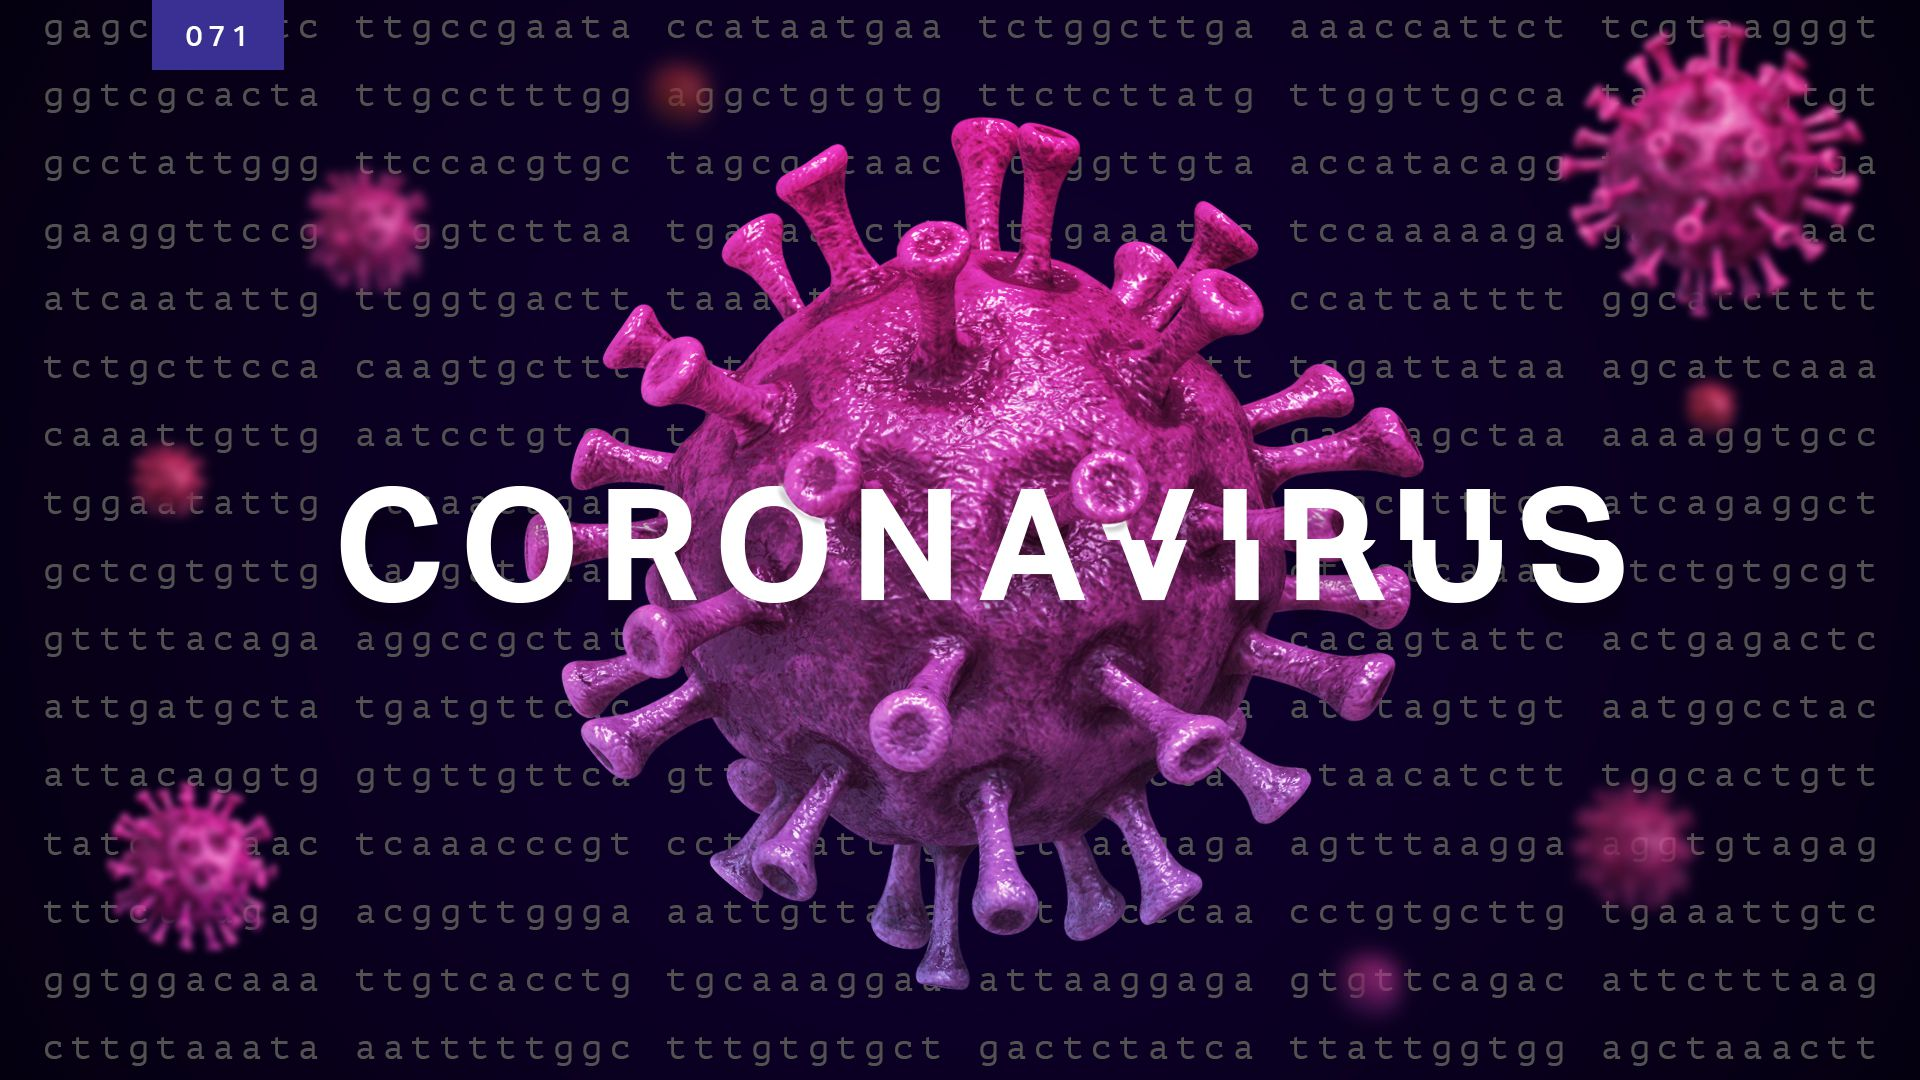 The deadly spread of Coronavirus that started fron China